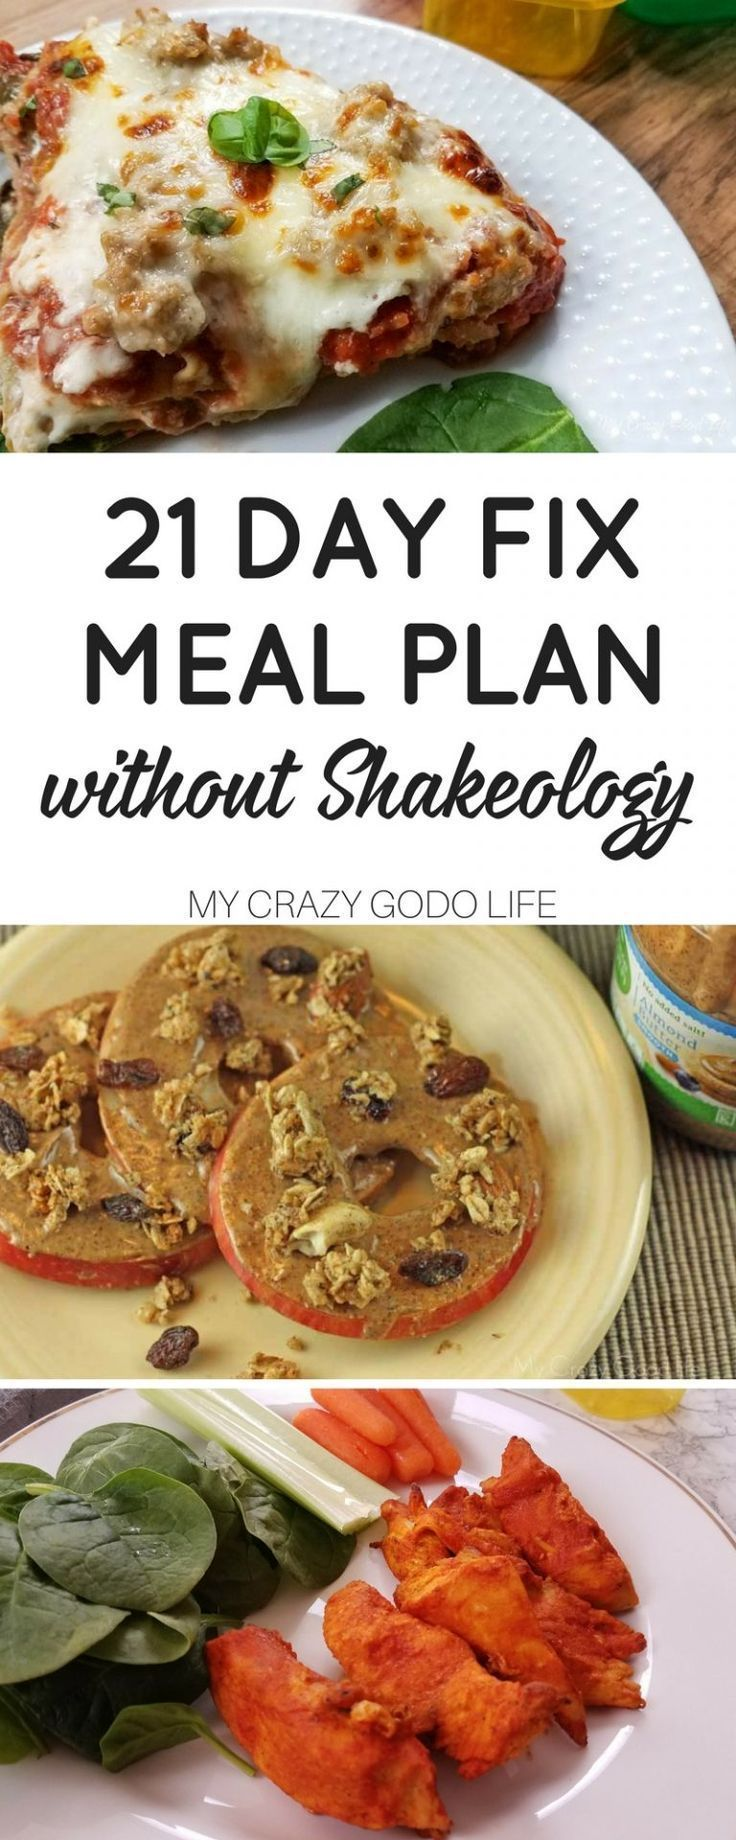 21 Day Fix Meal Plan Without Shakeology